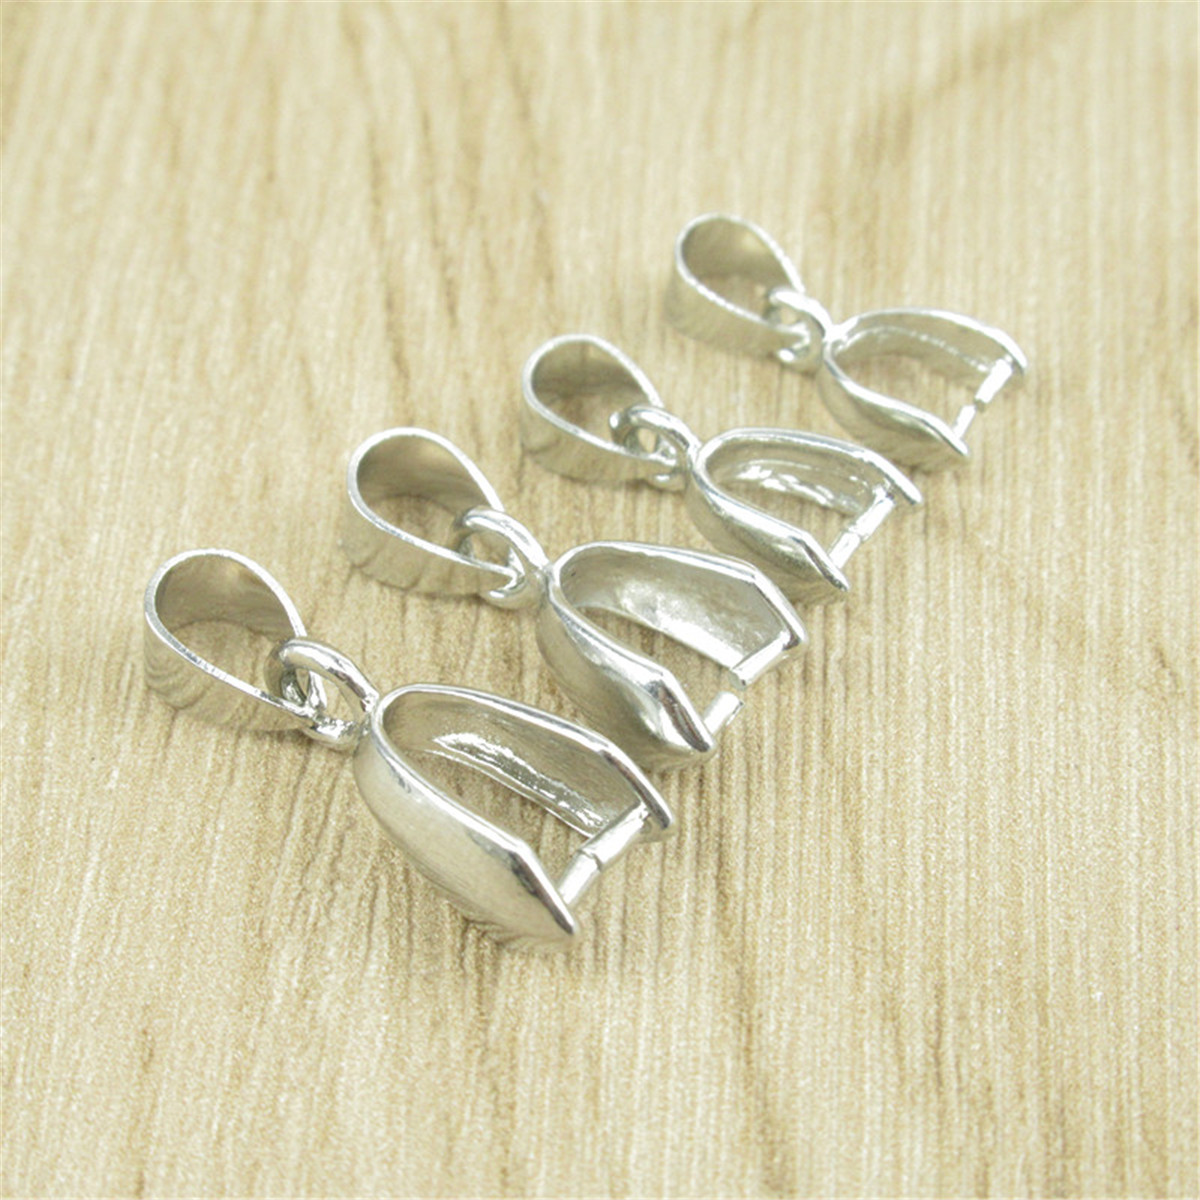 10x Metal Link Connectors Gold Silver Findings 20 30mm Earrings Making